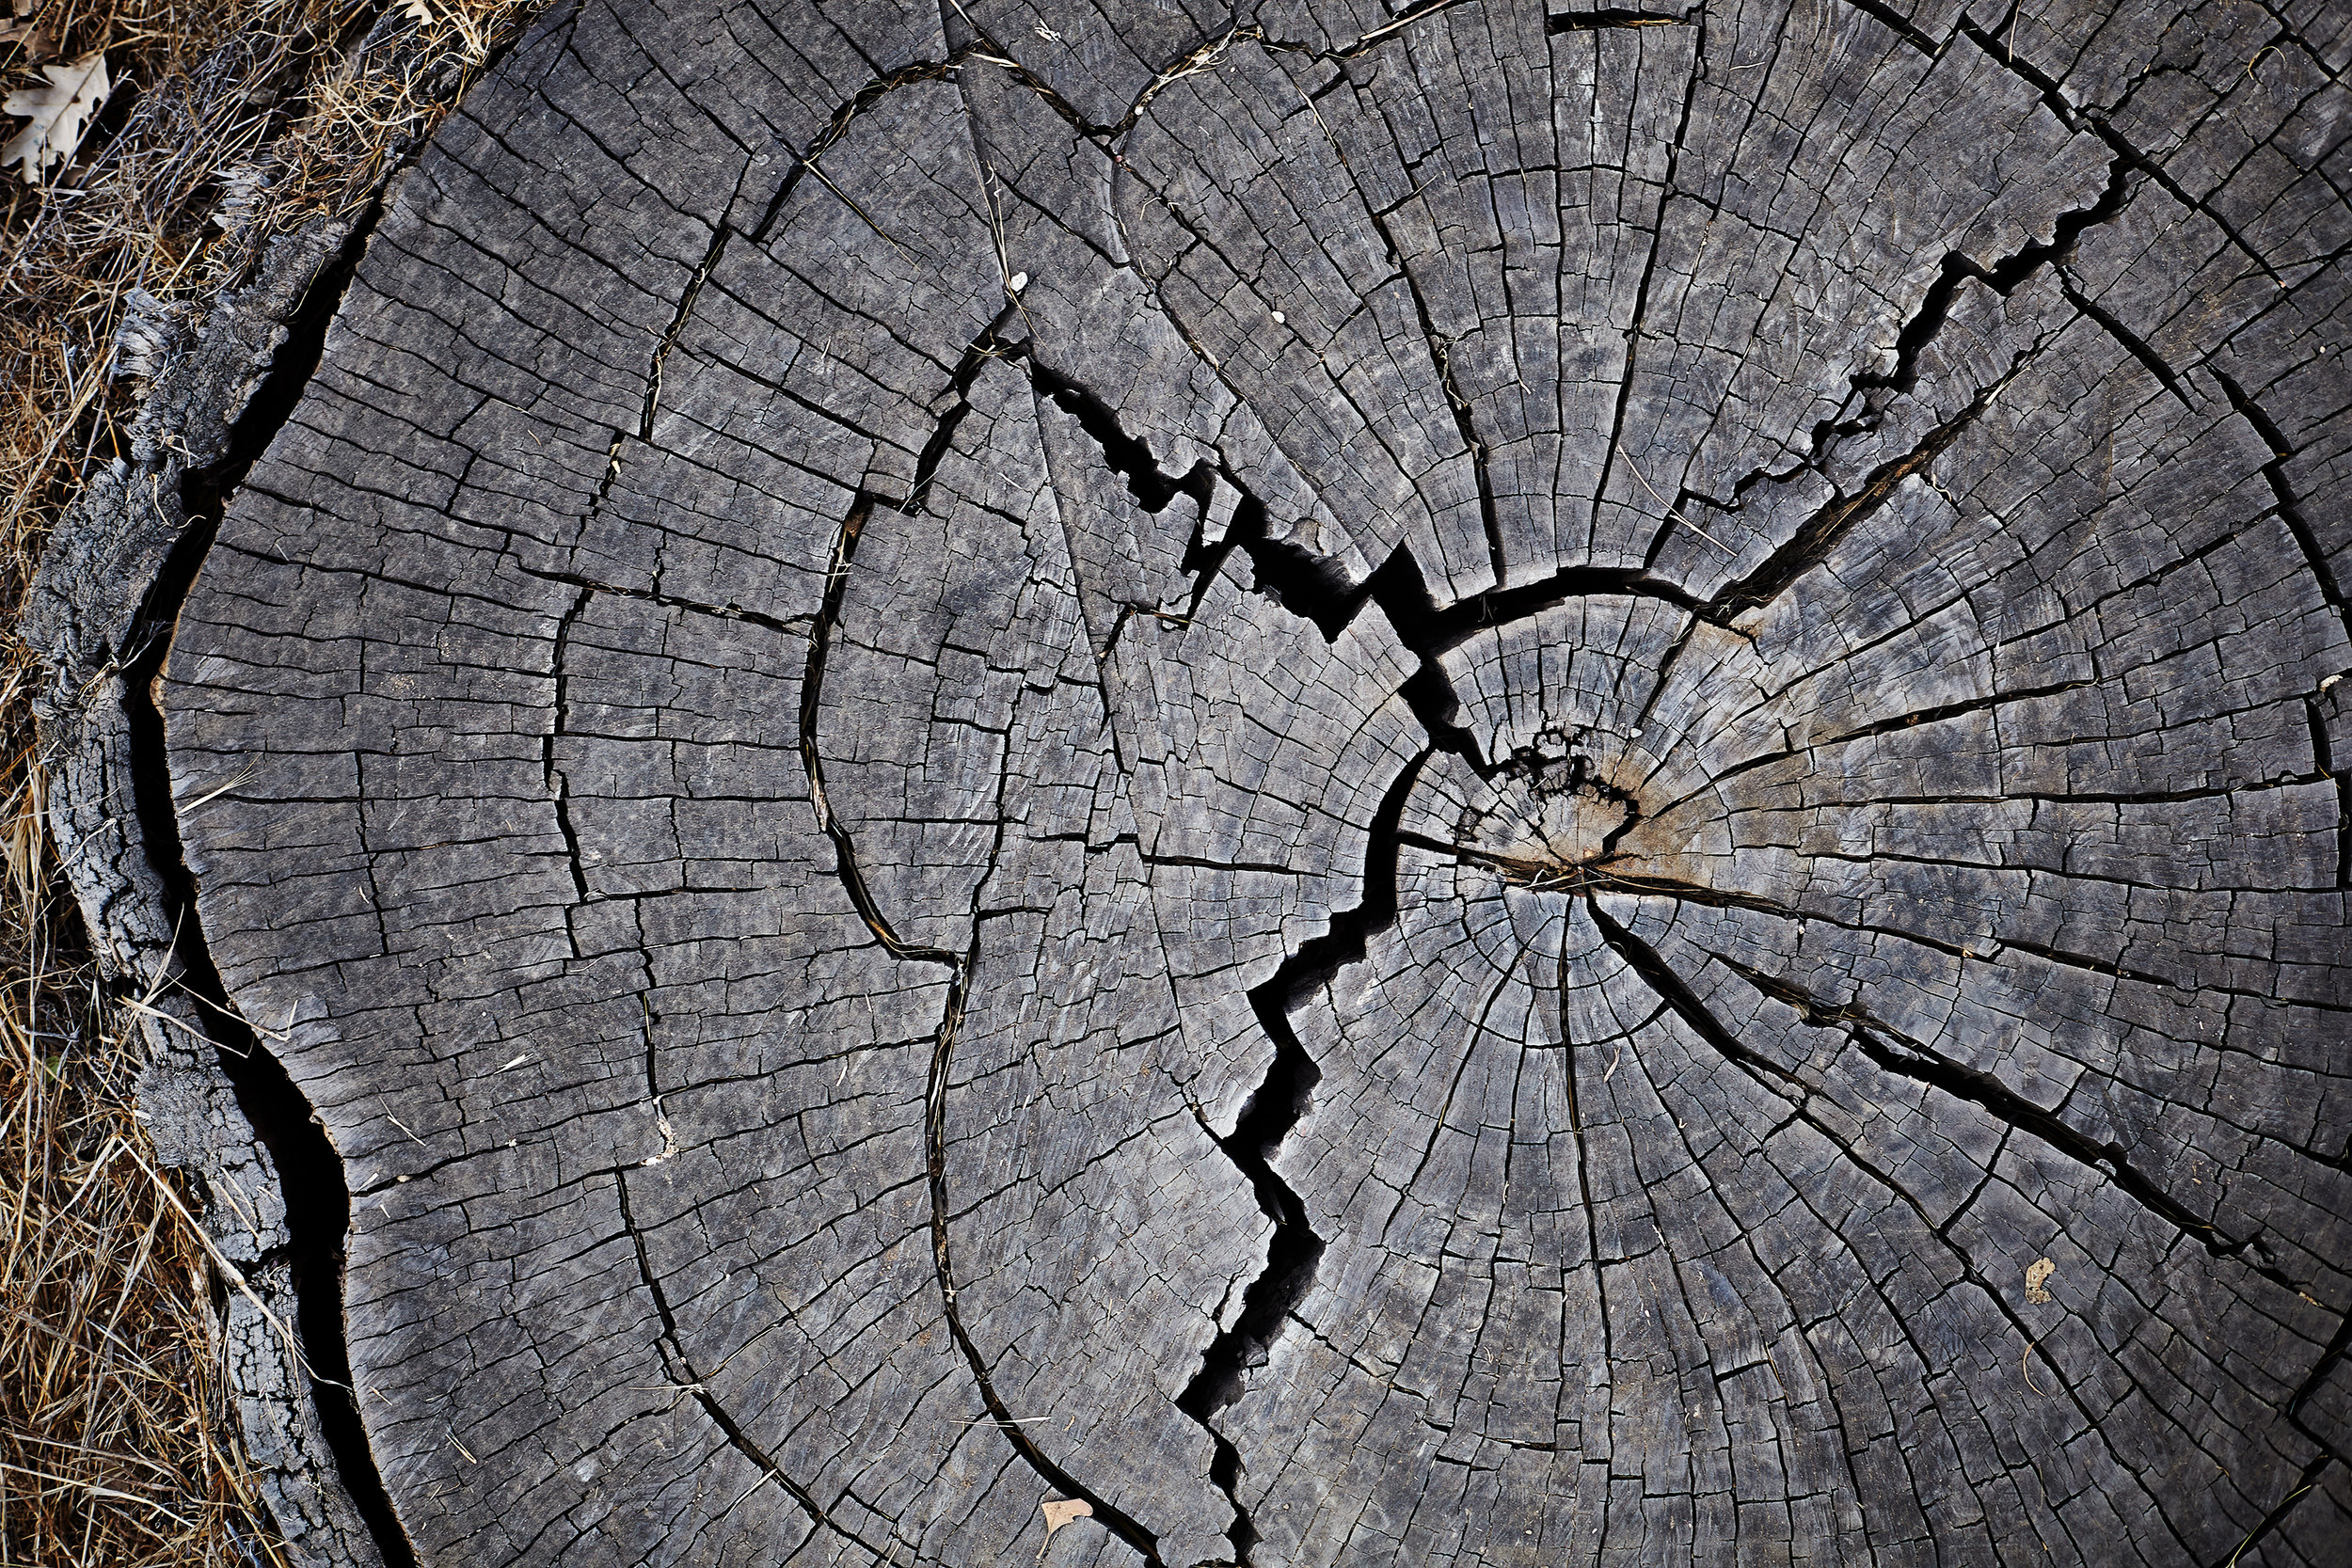 close up cross-section of tree trunk